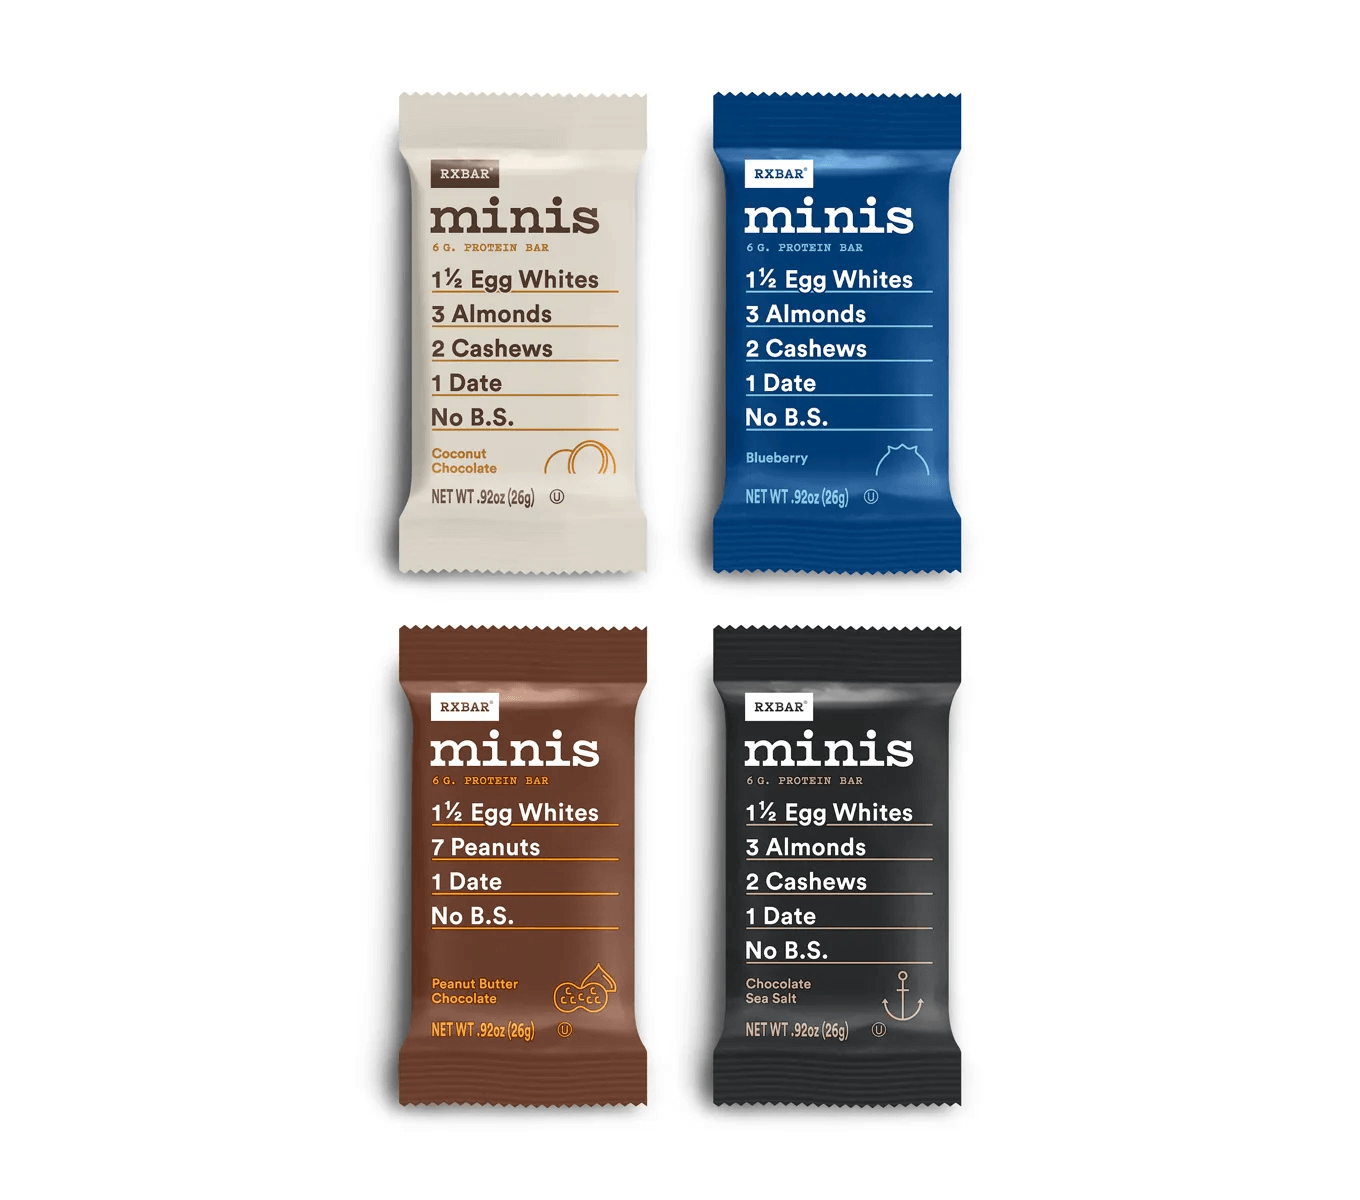 RXBAR - product packaging